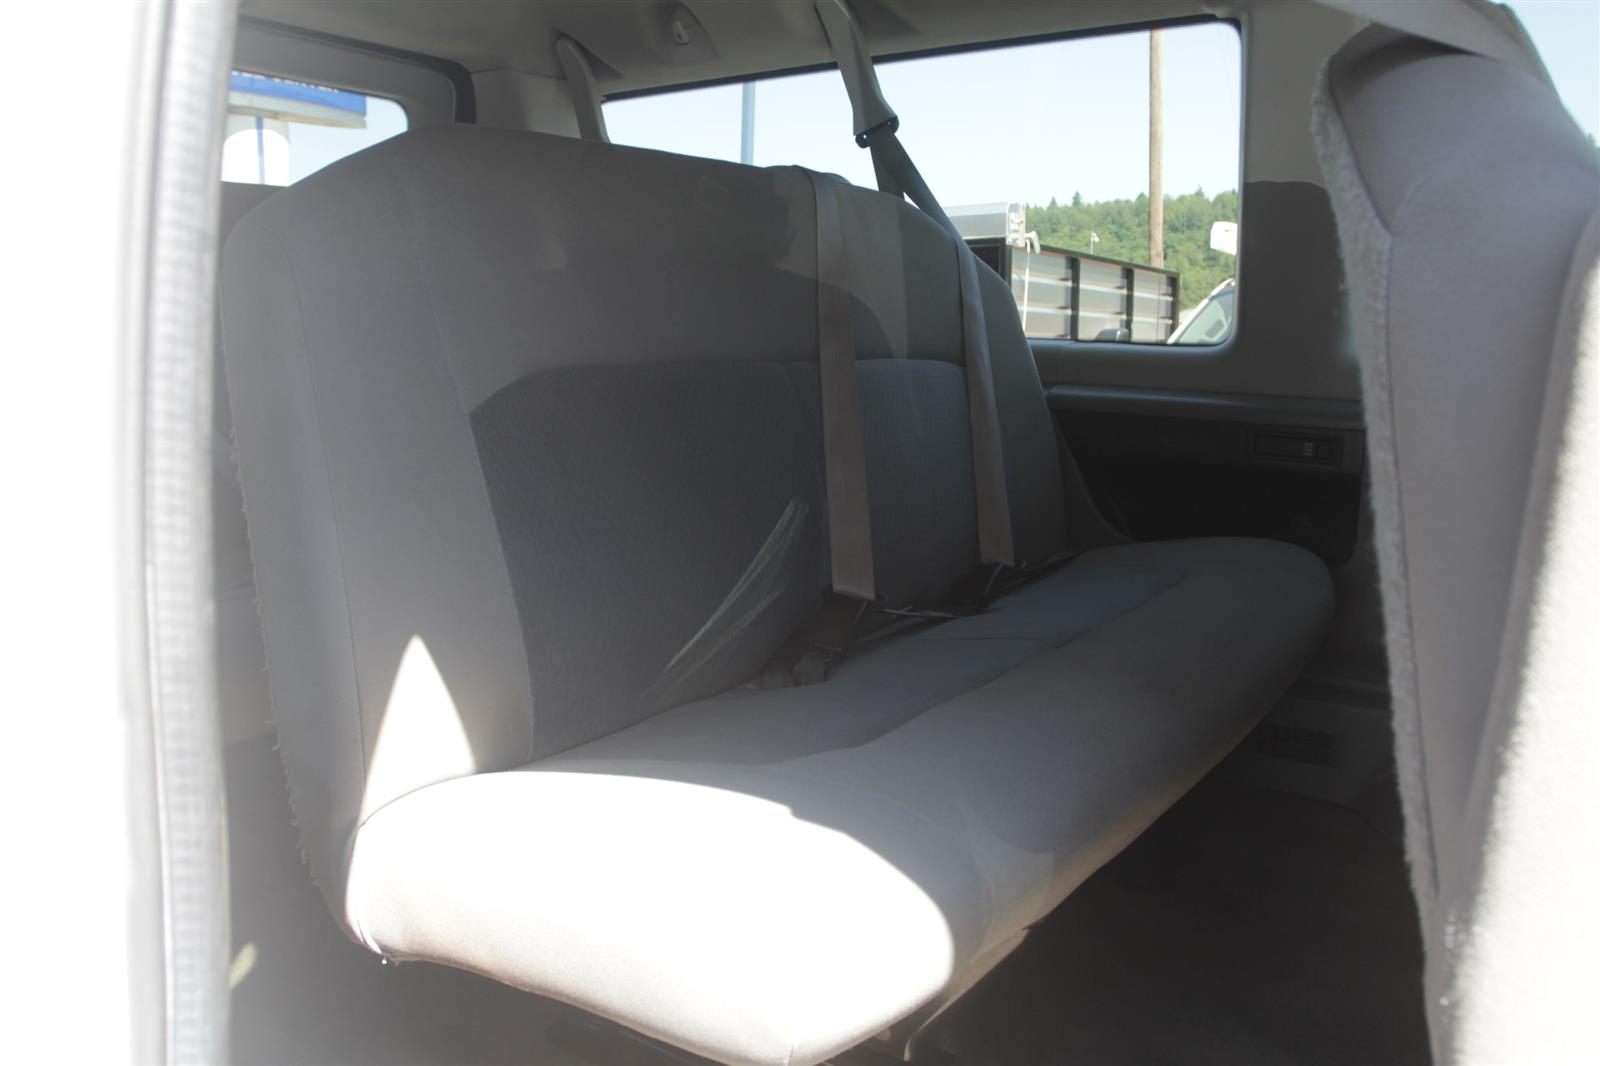 2014 Ford E-350 4x2, Passenger Wagon #52693 - photo 17